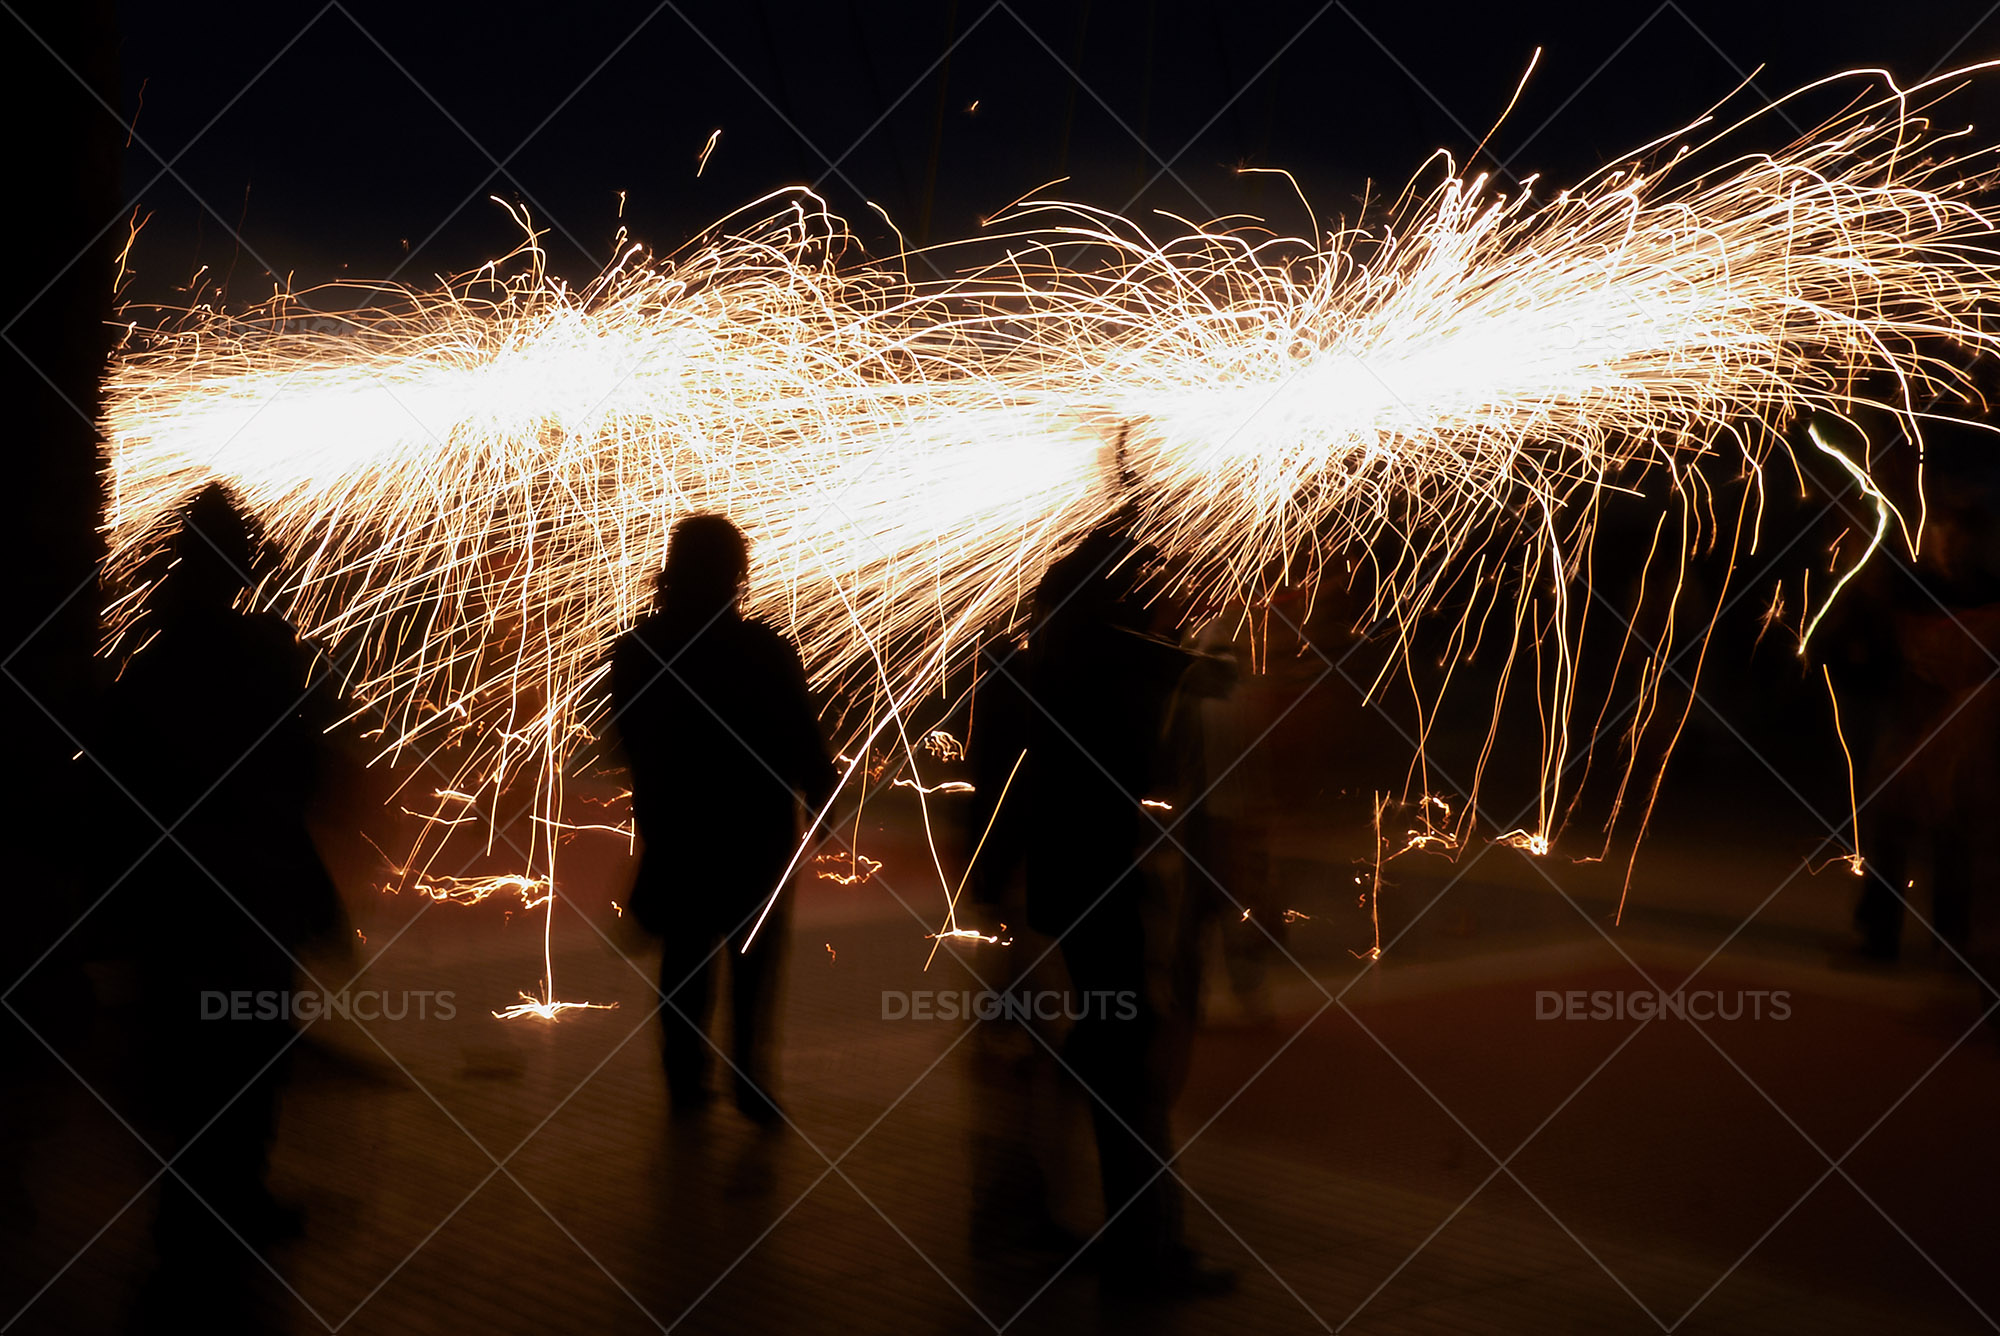 Motion Blur Silhouettes With Sparklers